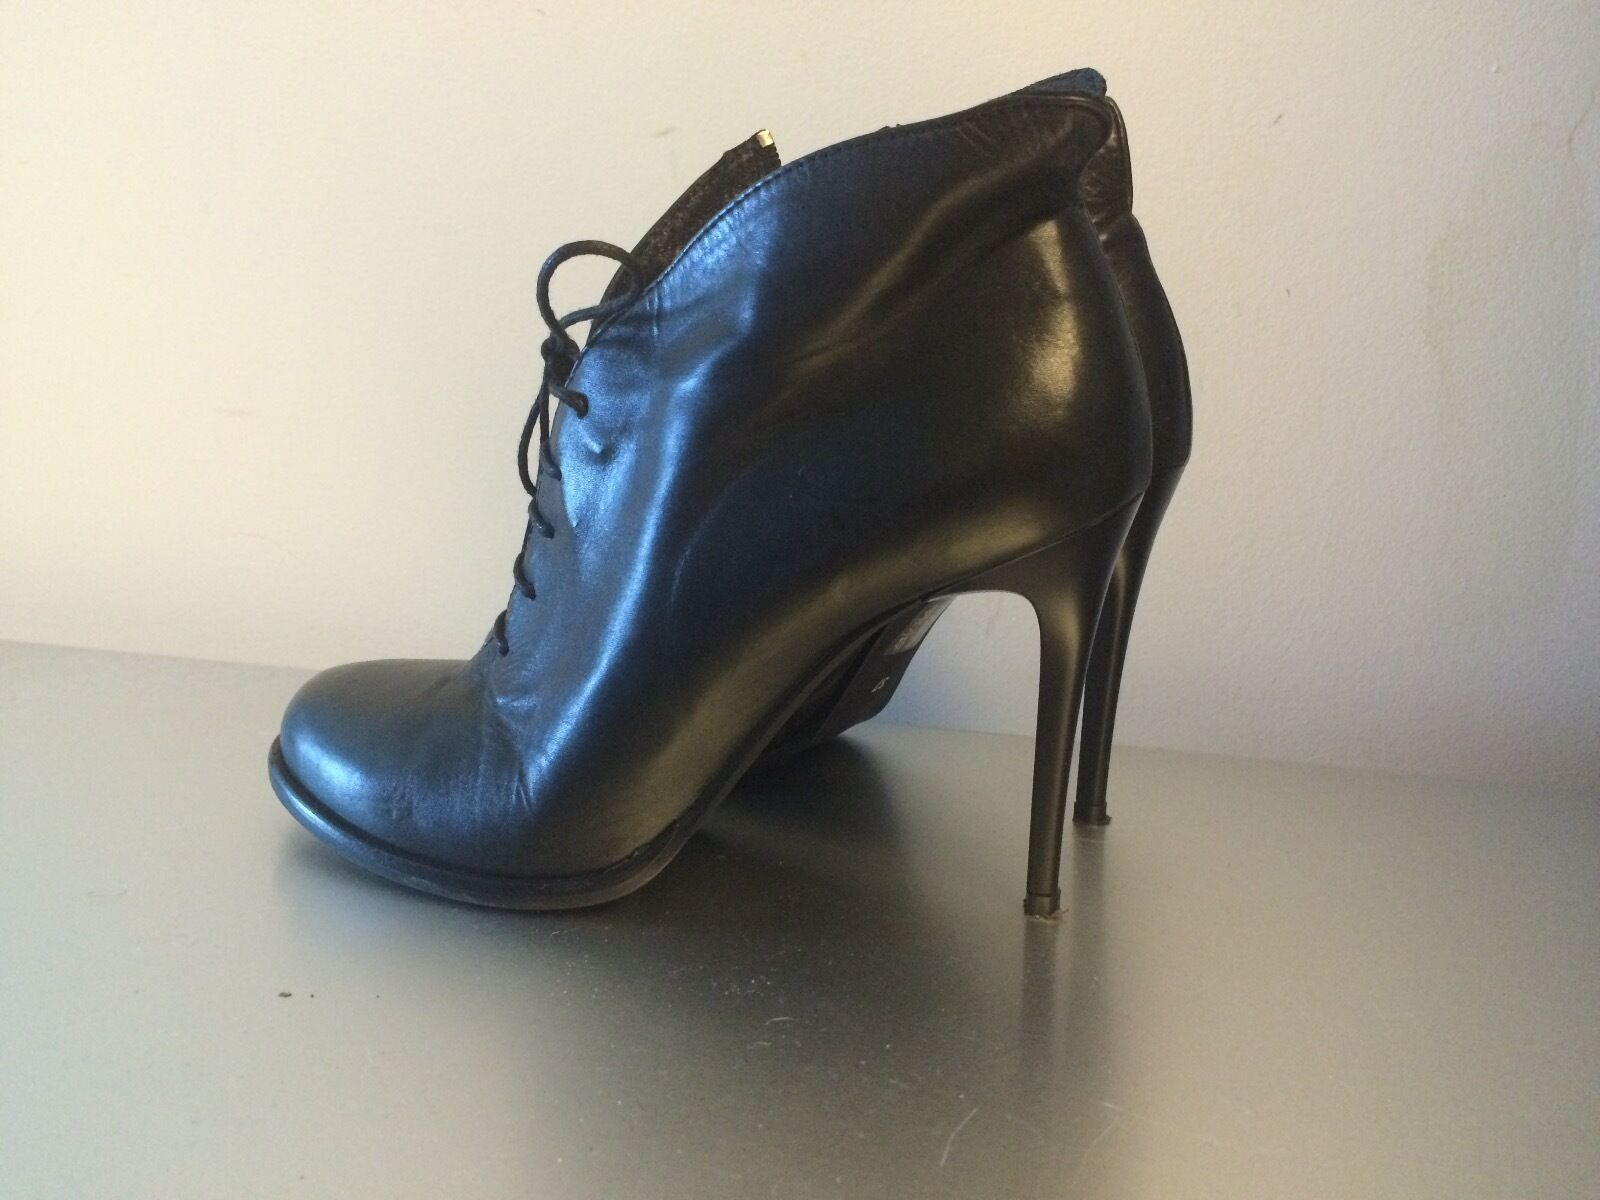 Black Real Leather Women's BAGATT Ankle Boots Size 37 Made in Italy